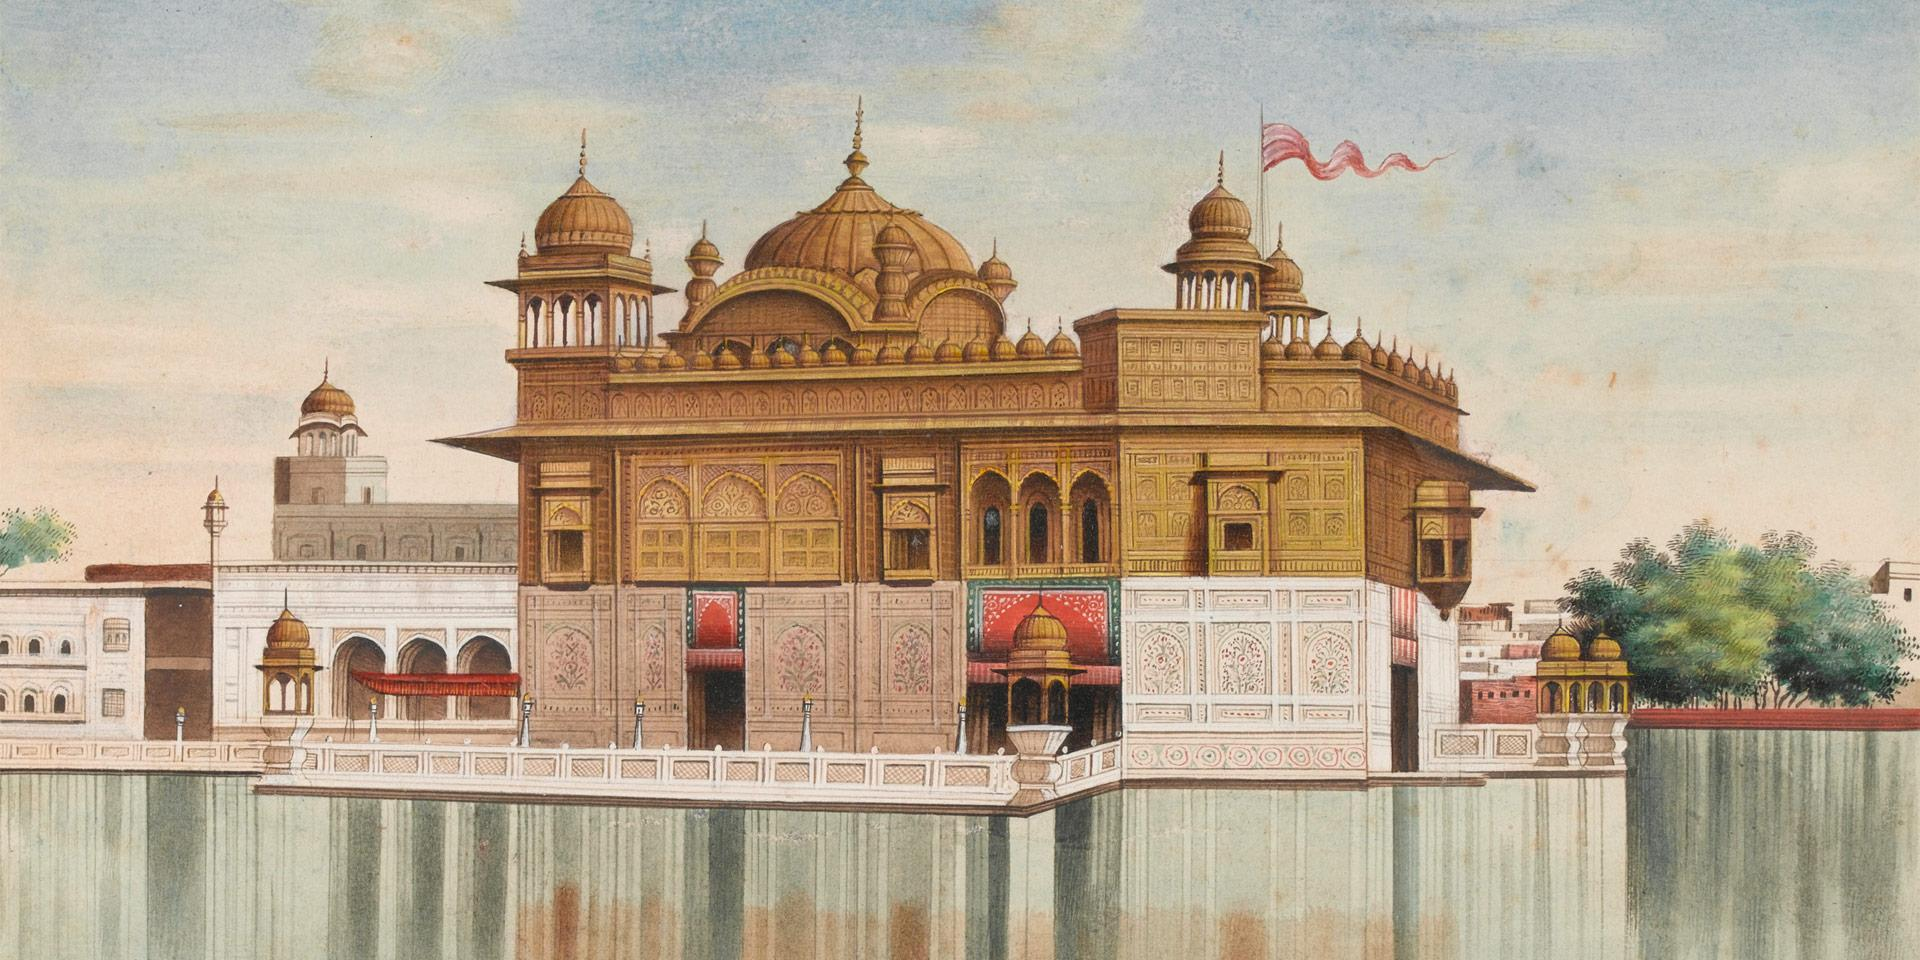 The Golden Temple at Amritsar, the most important place of worship for Sikhs